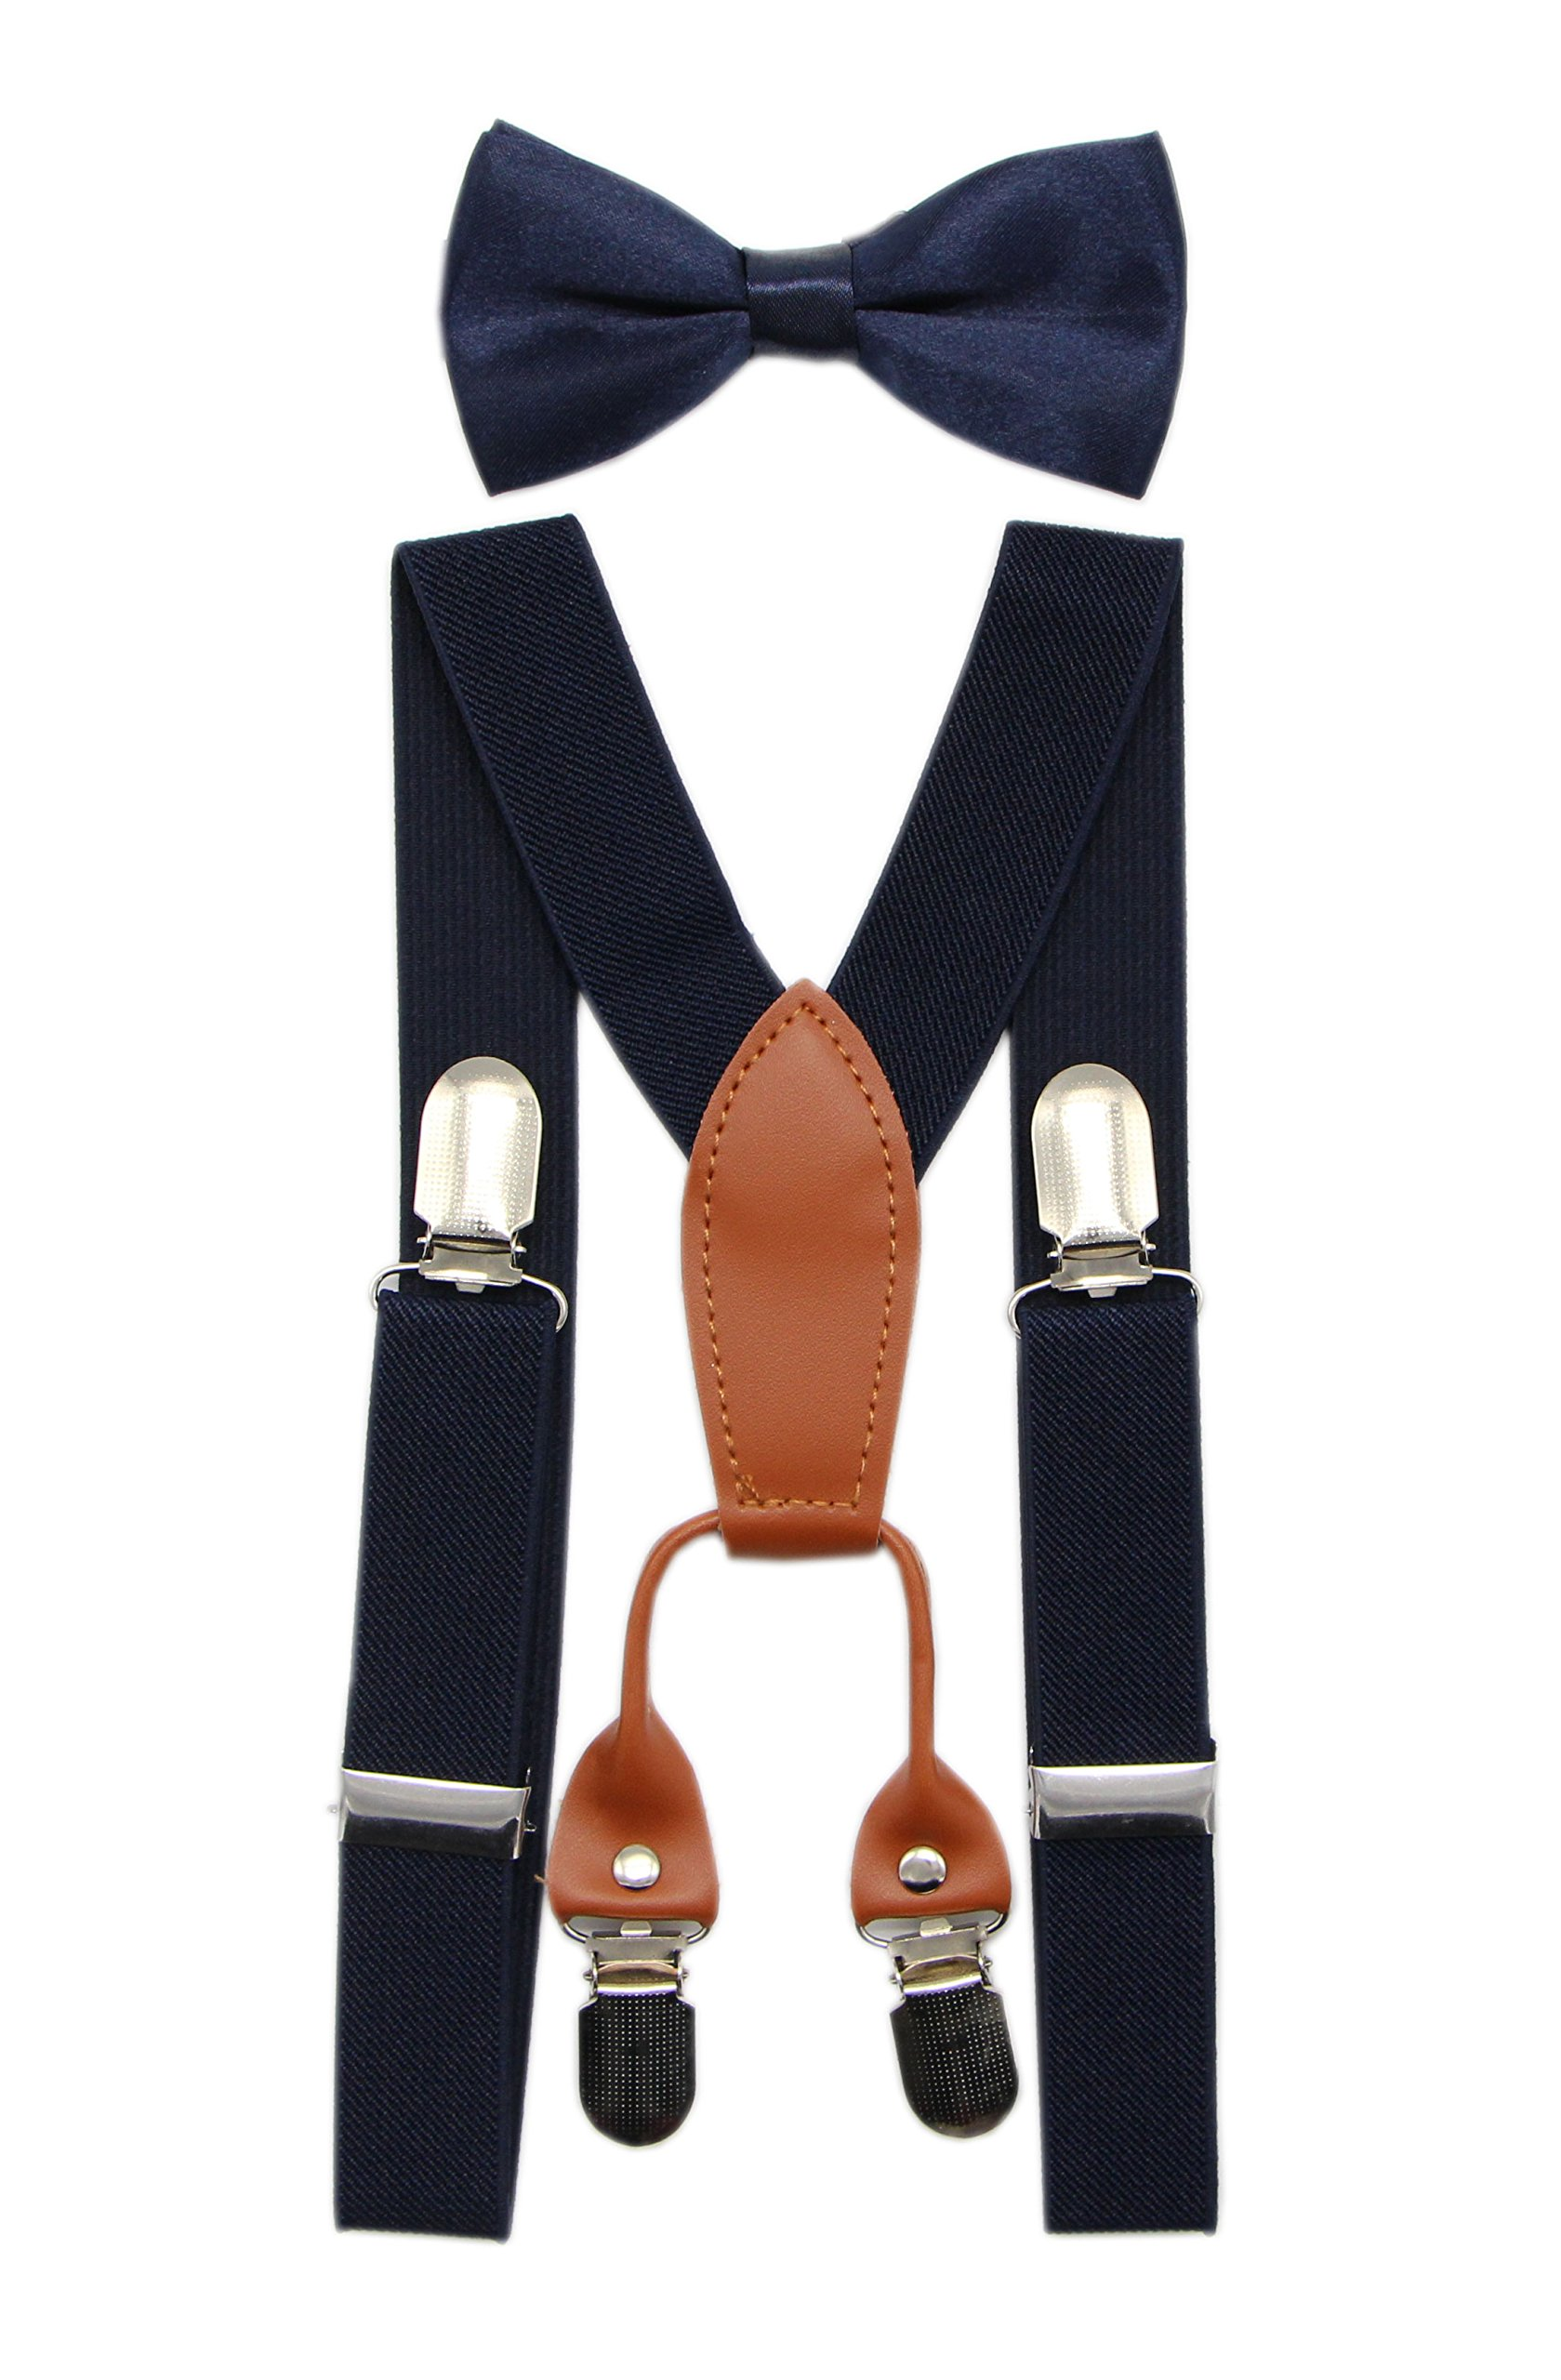 JAIFEI Toddler Kids 4 Clips Adjustable Suspenders and Matching Bow Tie Set (Navy)